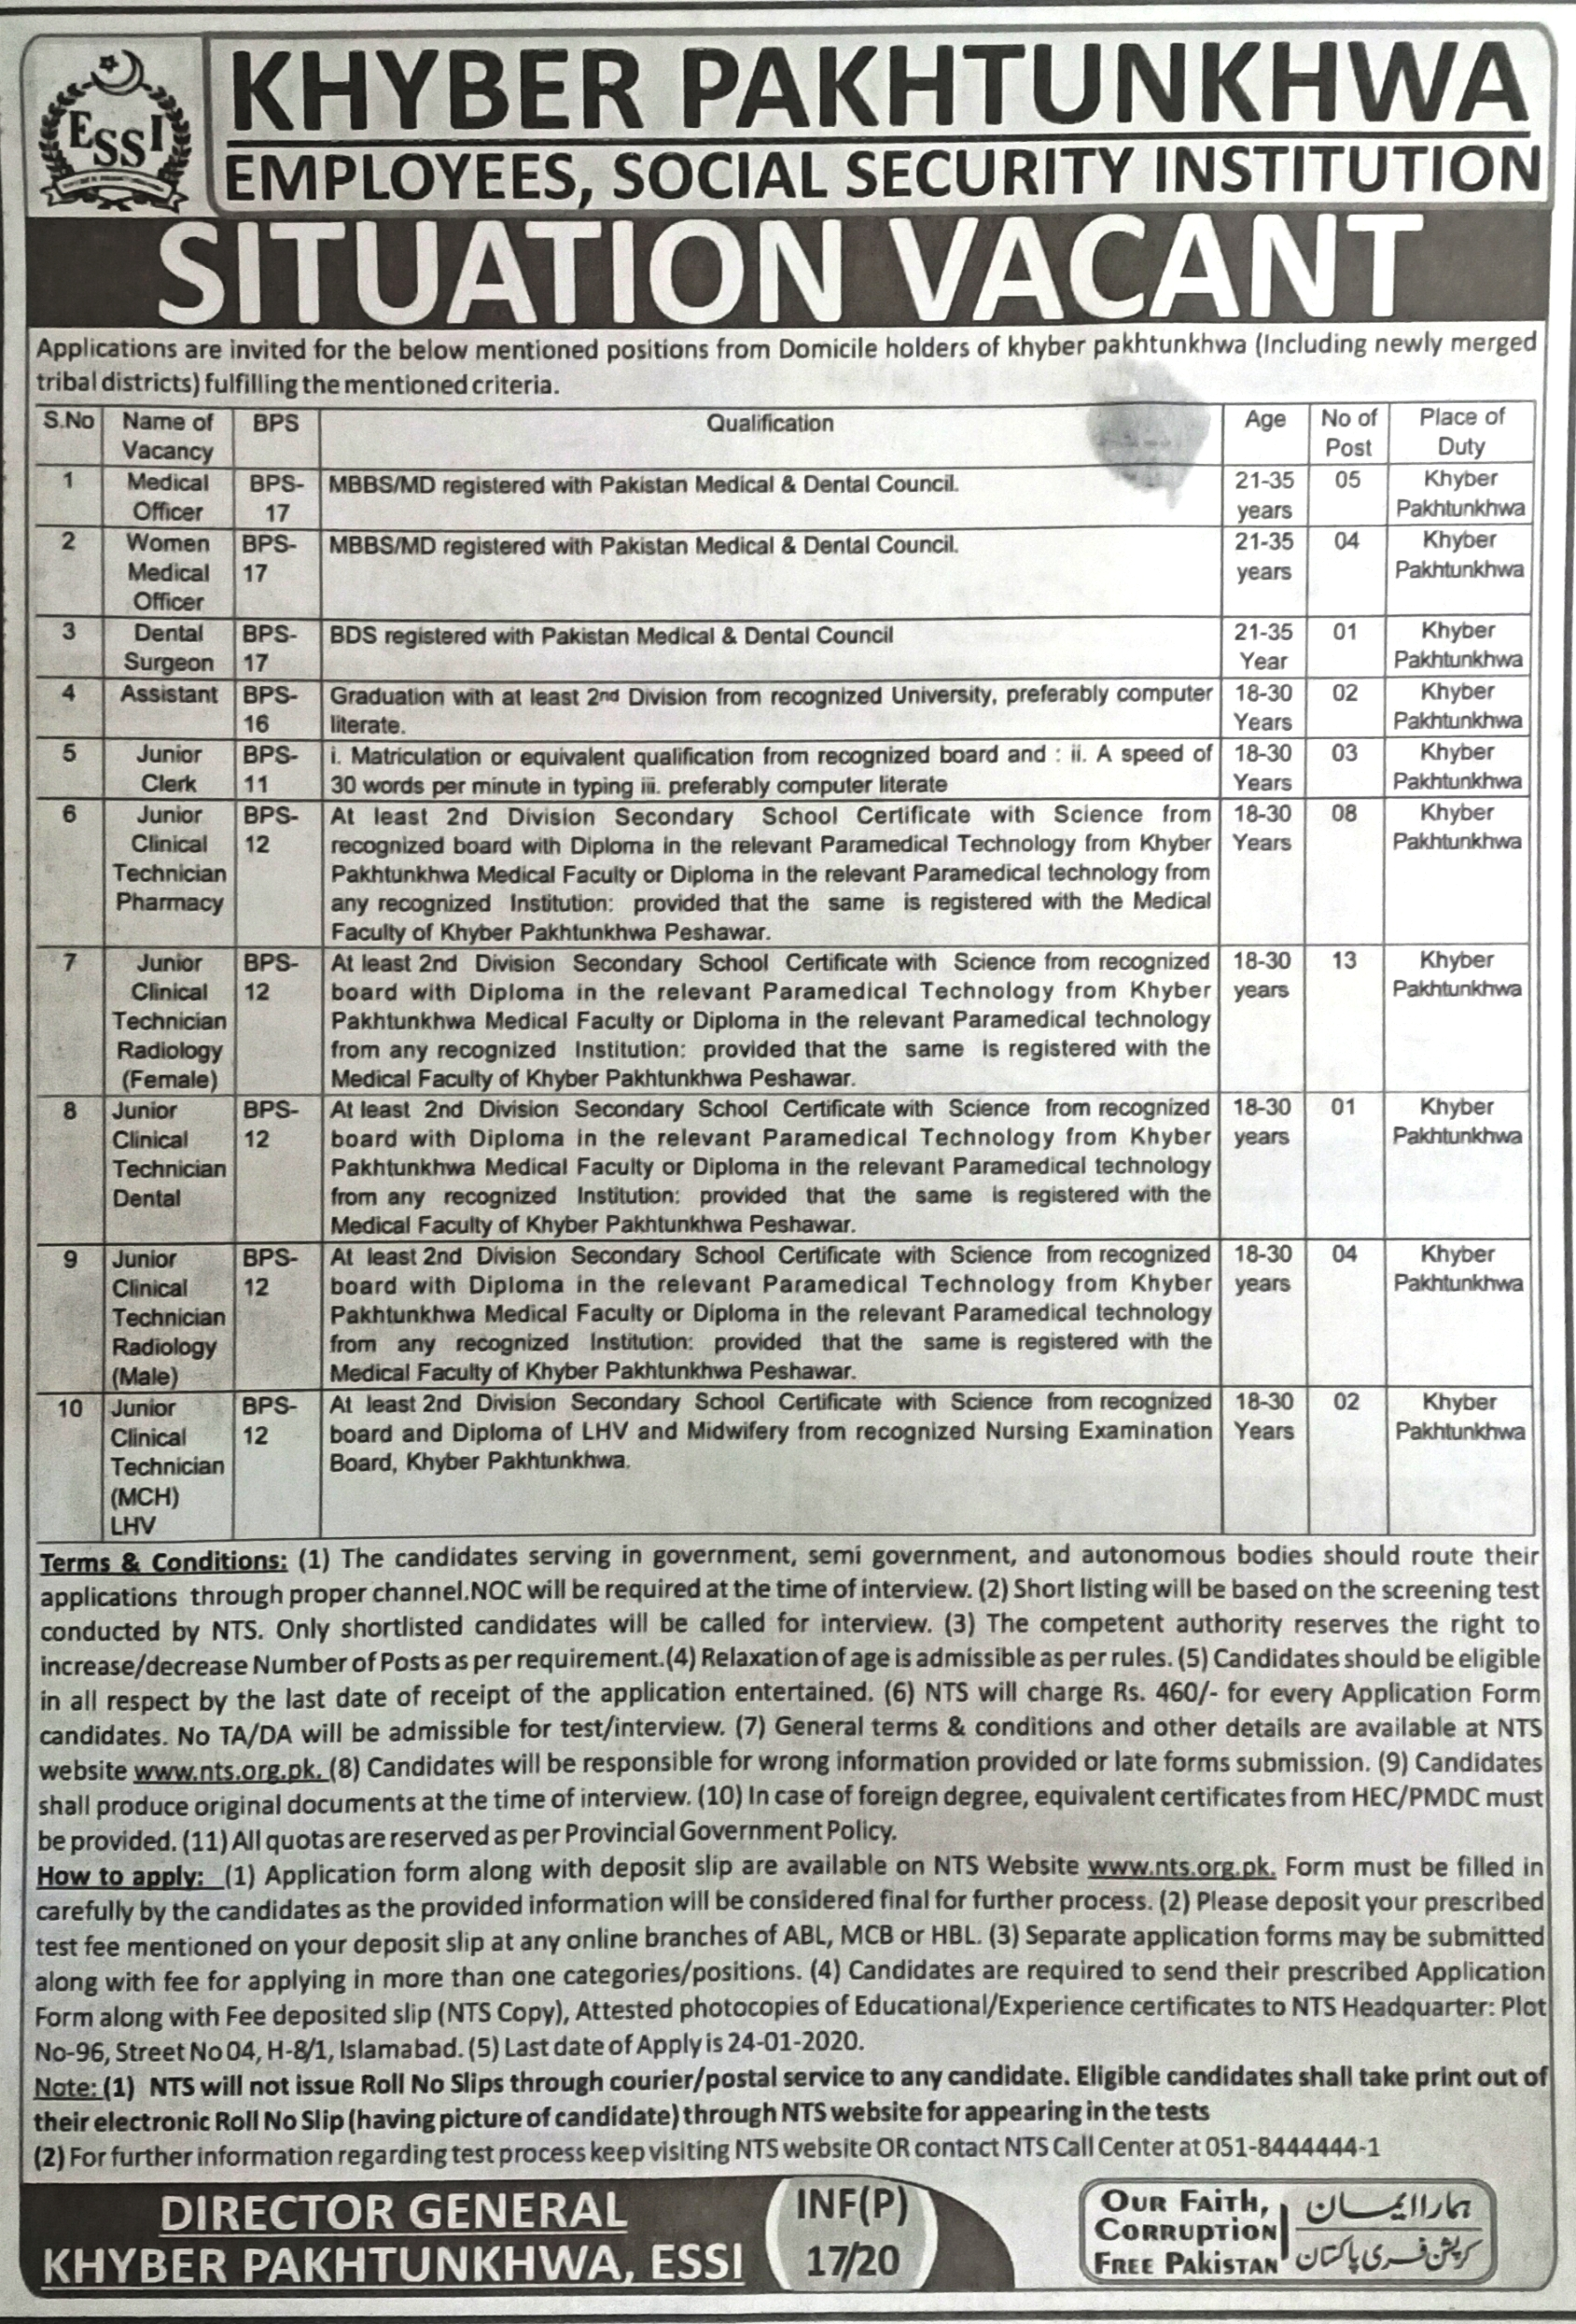 ESSI KPK Jobs NTS Answer Keys Result Employees Social Security Institution Khyber Pakhtunkhwa